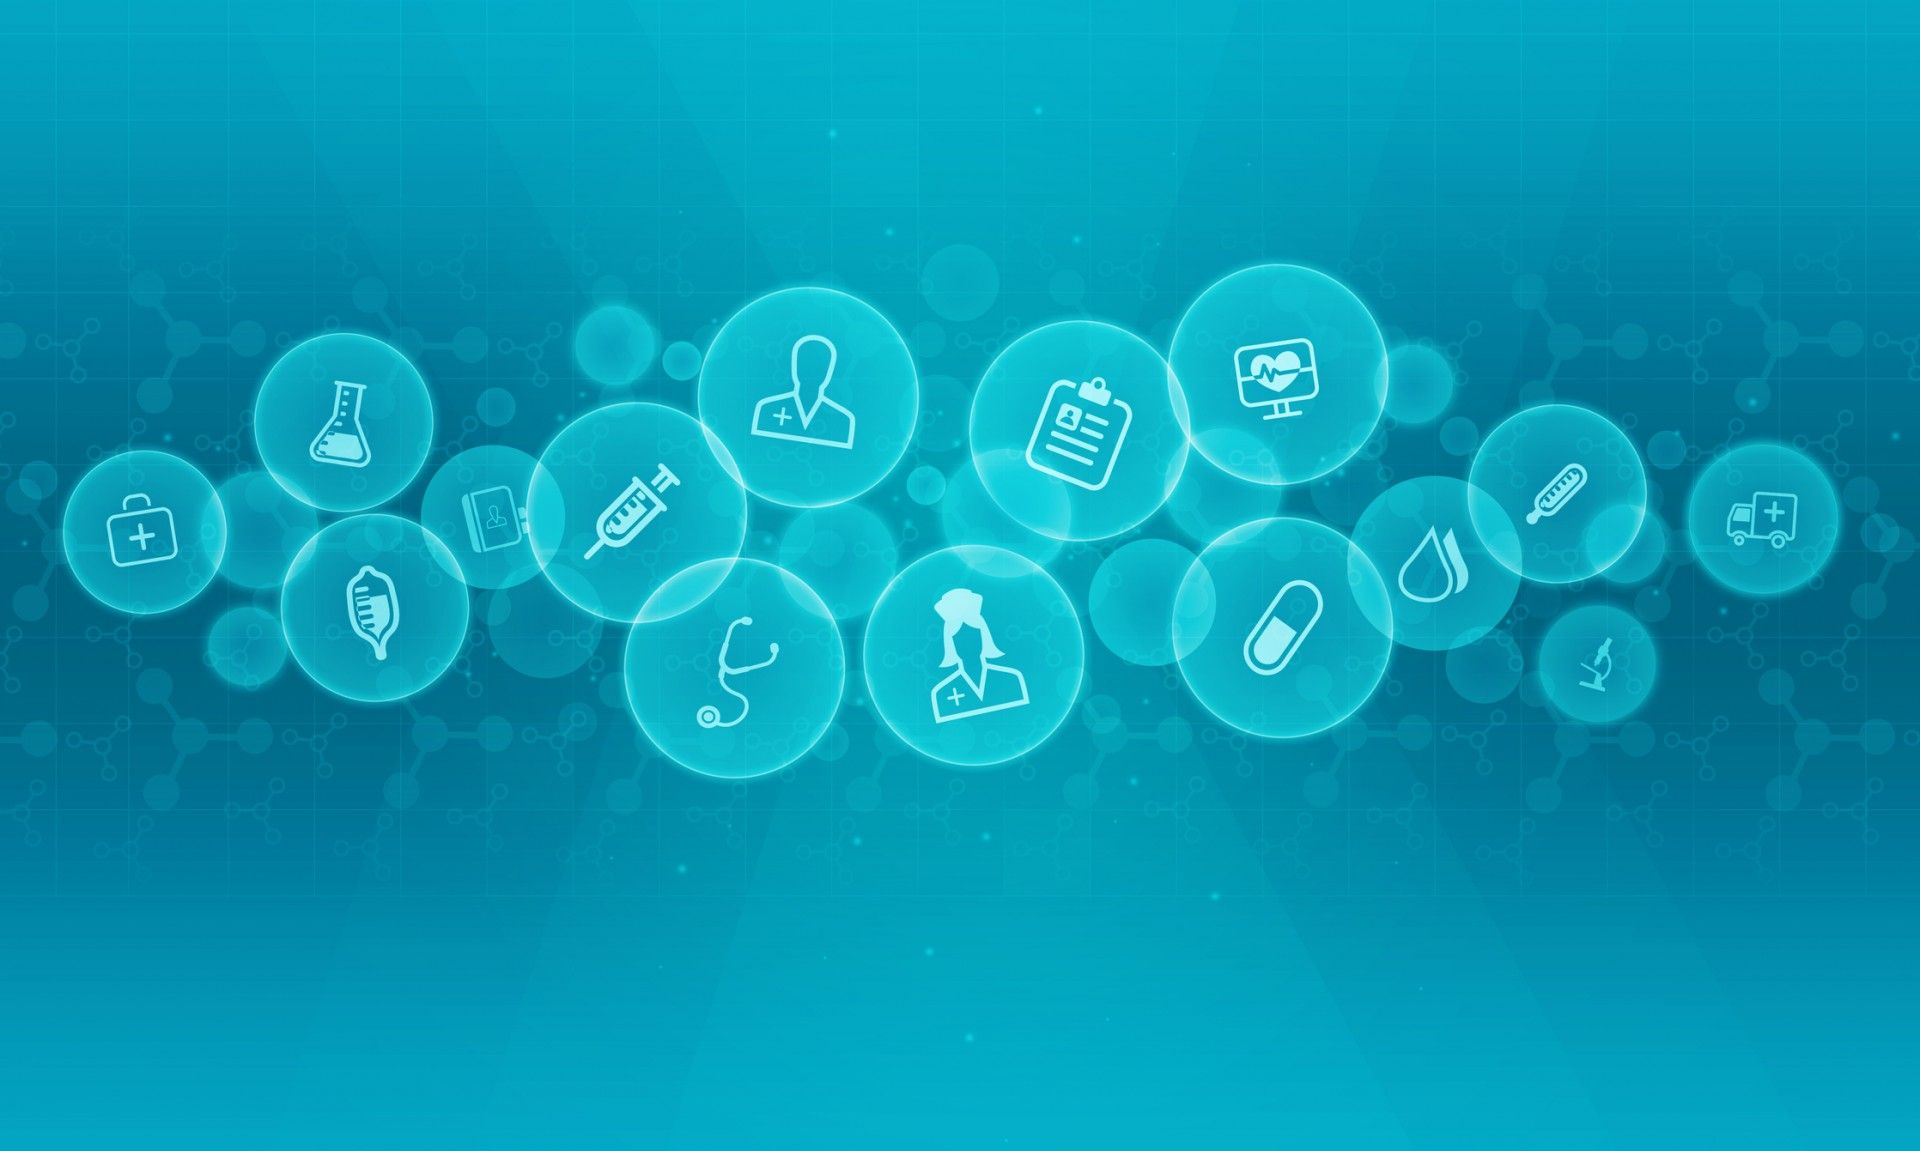 3 Best Practices for Balancing EHR Use and Patient